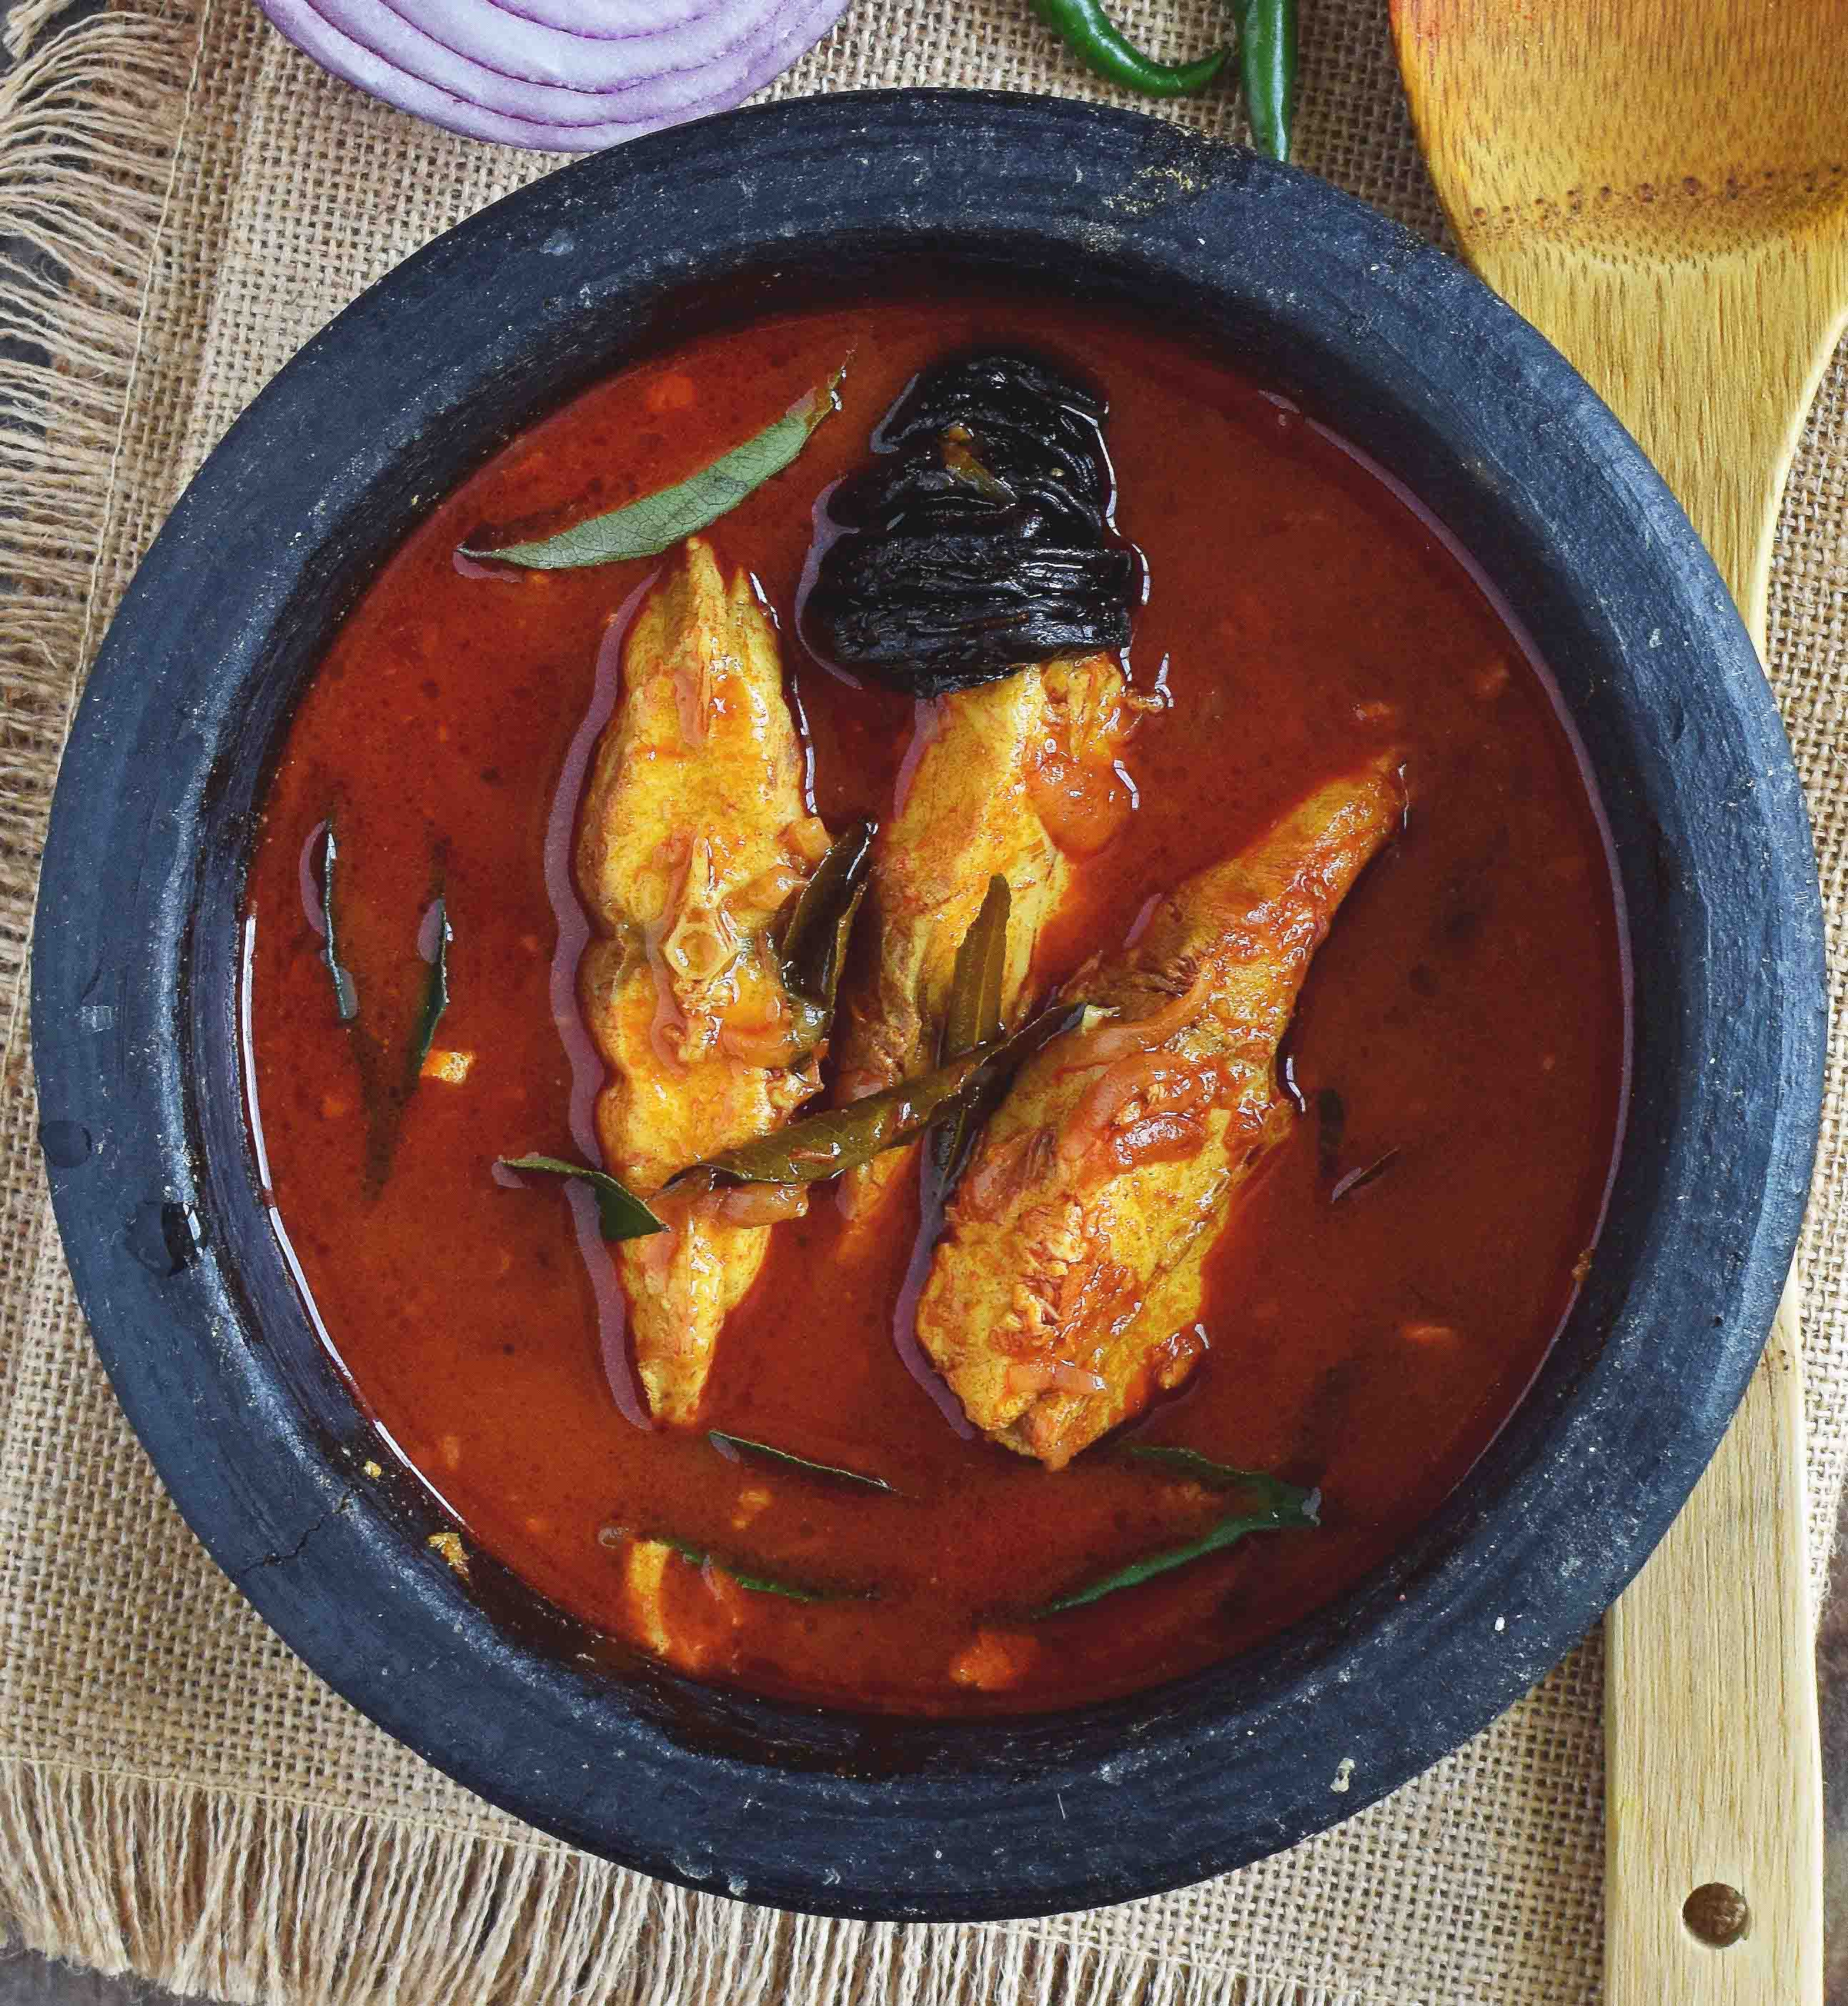 Red Fish Curry- Pepper Delight #pepperdelightblog #recipe #fishrecipes #keralastyle #meenmulakittathu #meencurry #meenvevichathu